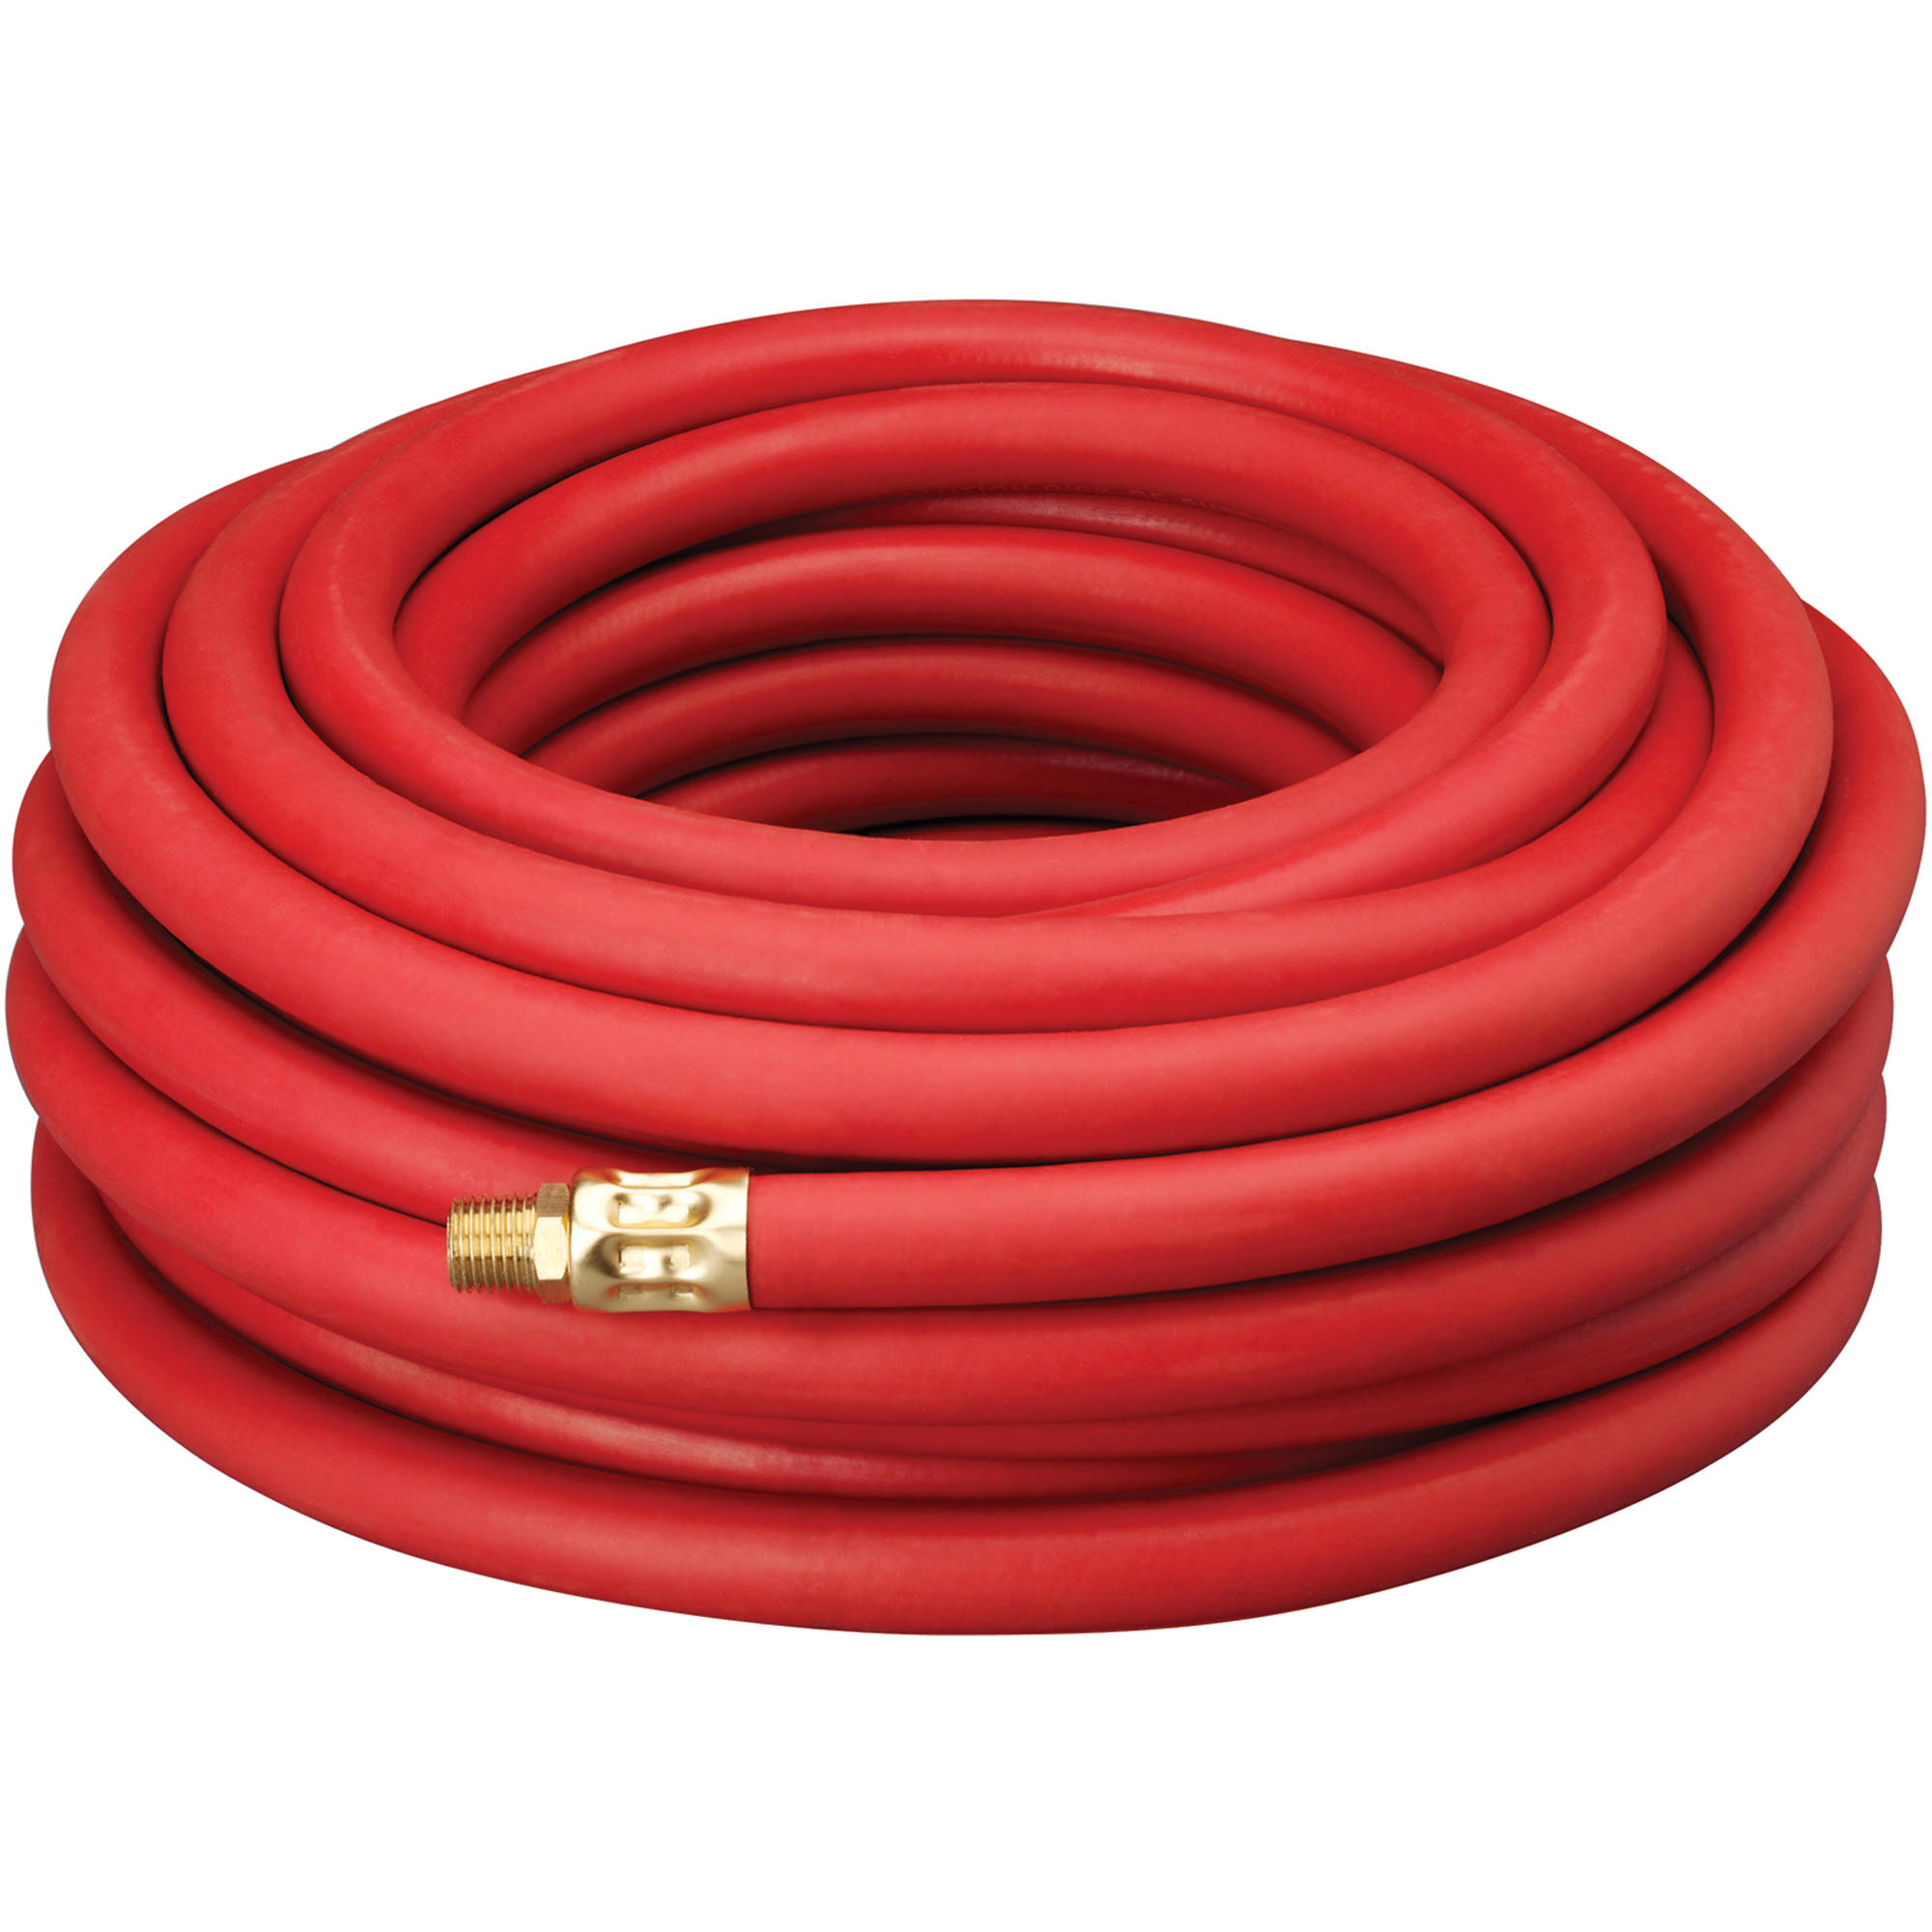 "Amflo 50' x 3/8"" Red Rubber Air Hose"